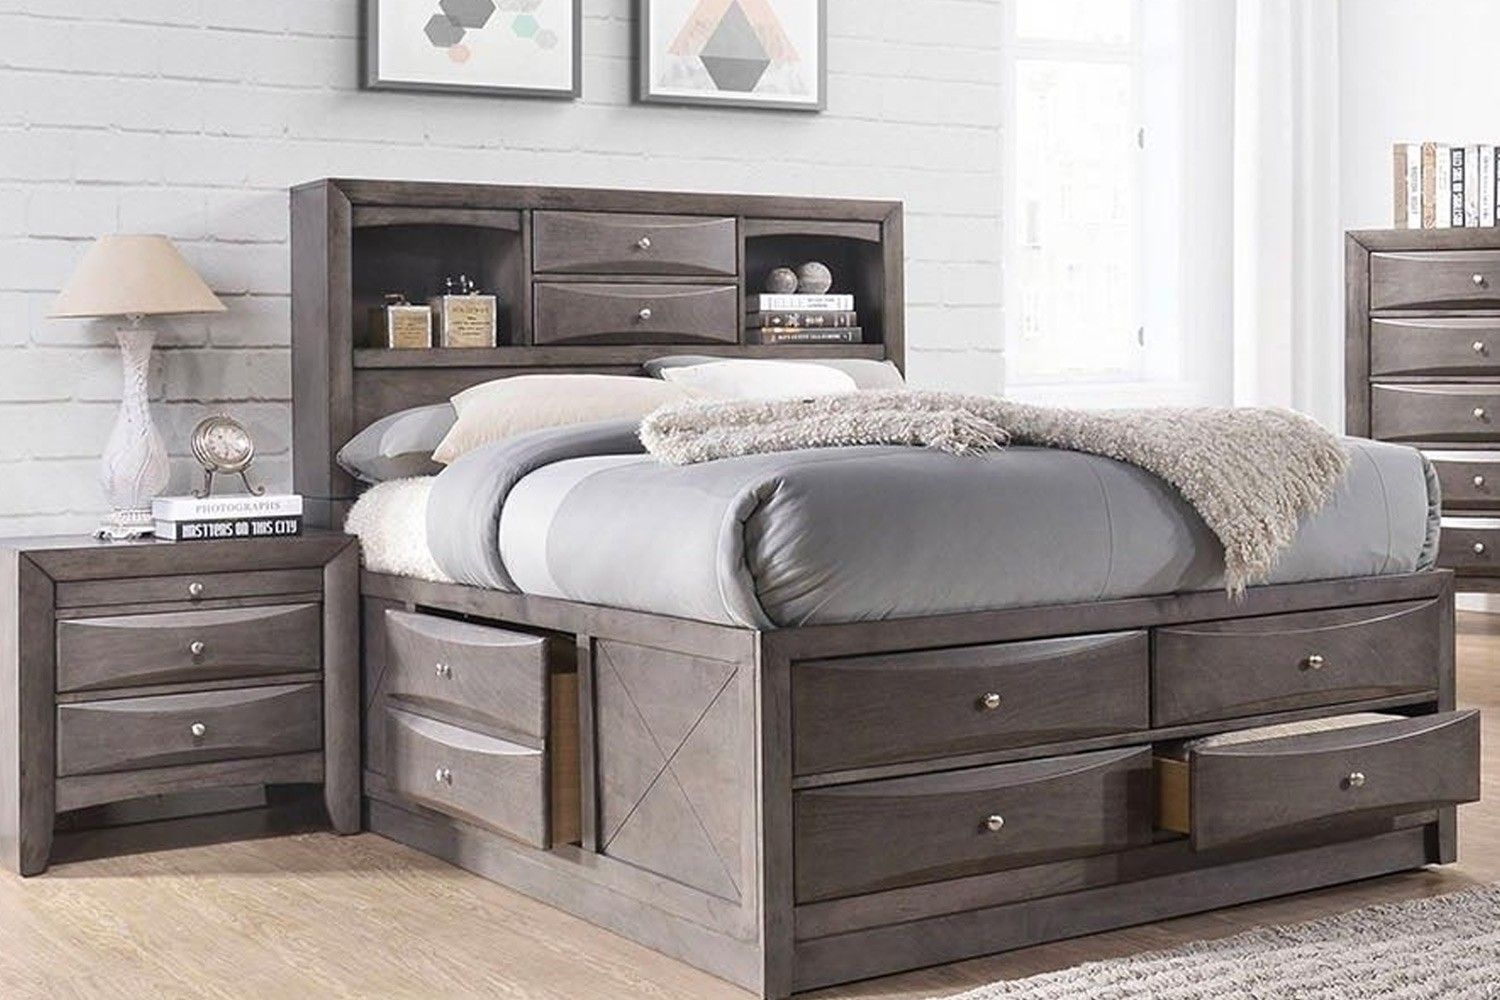 Remi Full Storage Bed Media Image 2 Full Bed With Storage